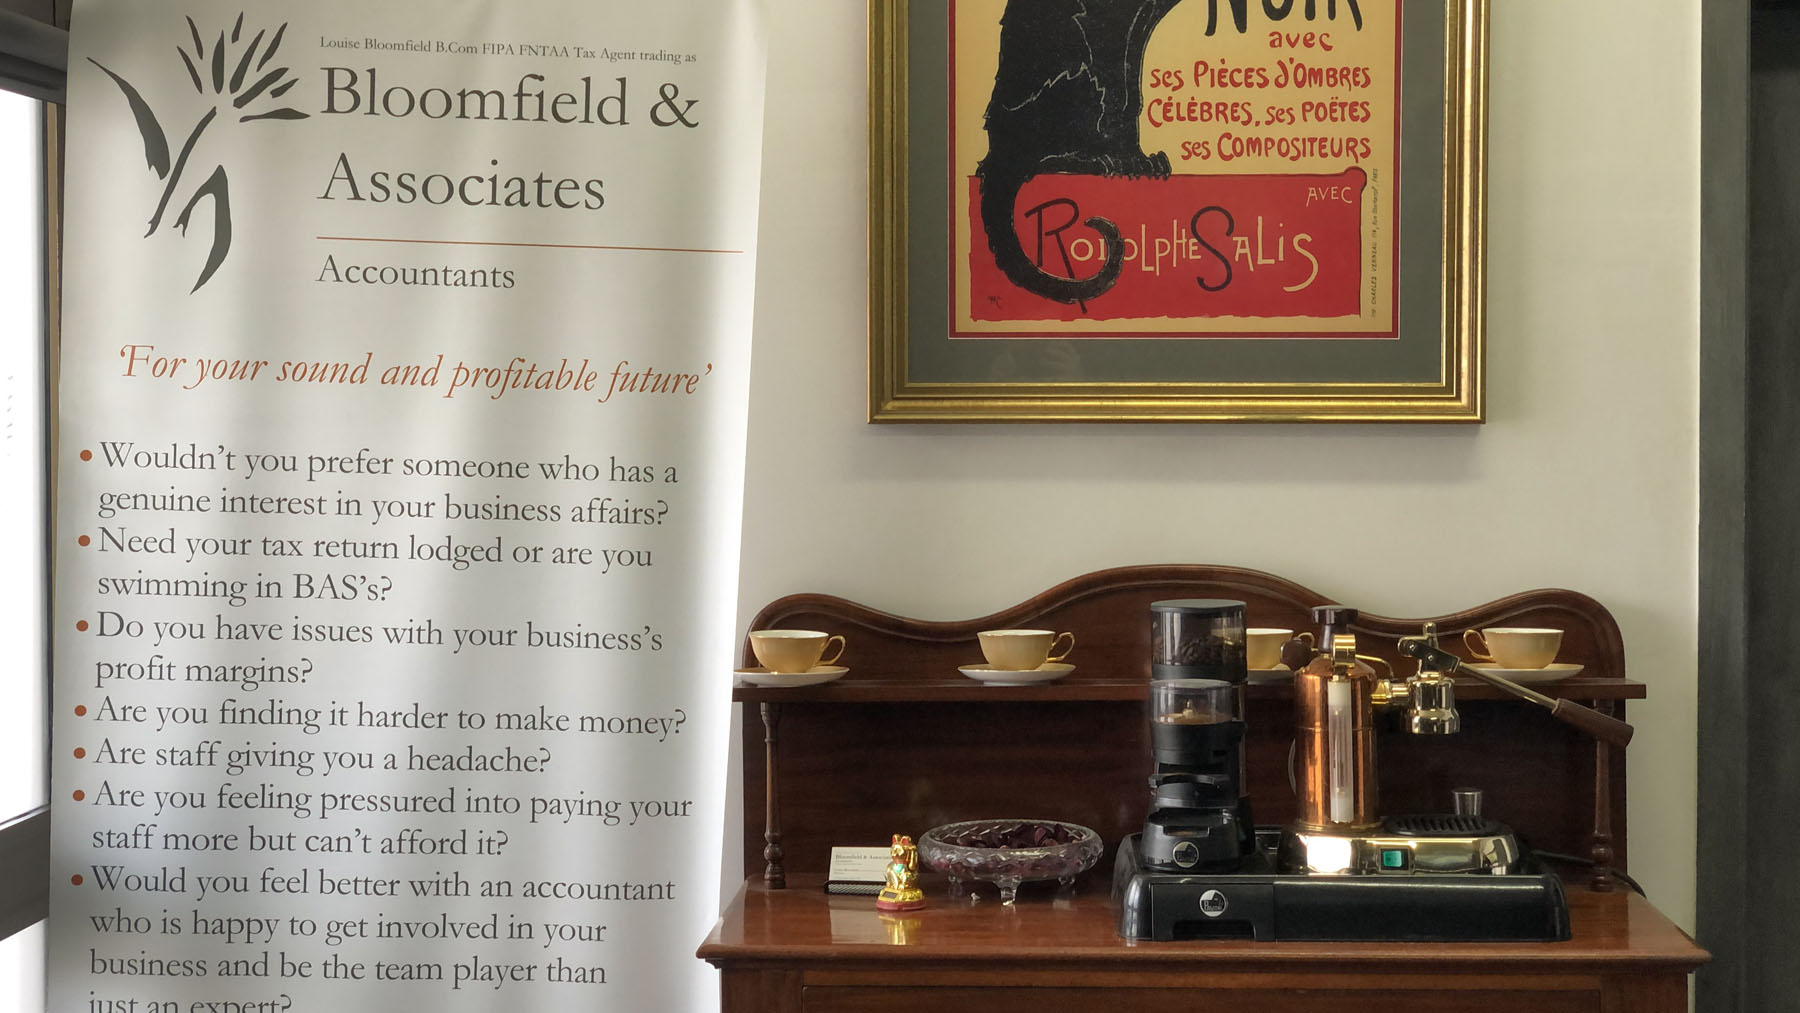 Bloomfield & Associates coffee machine on wooden cabinet with pull-up banner to the left